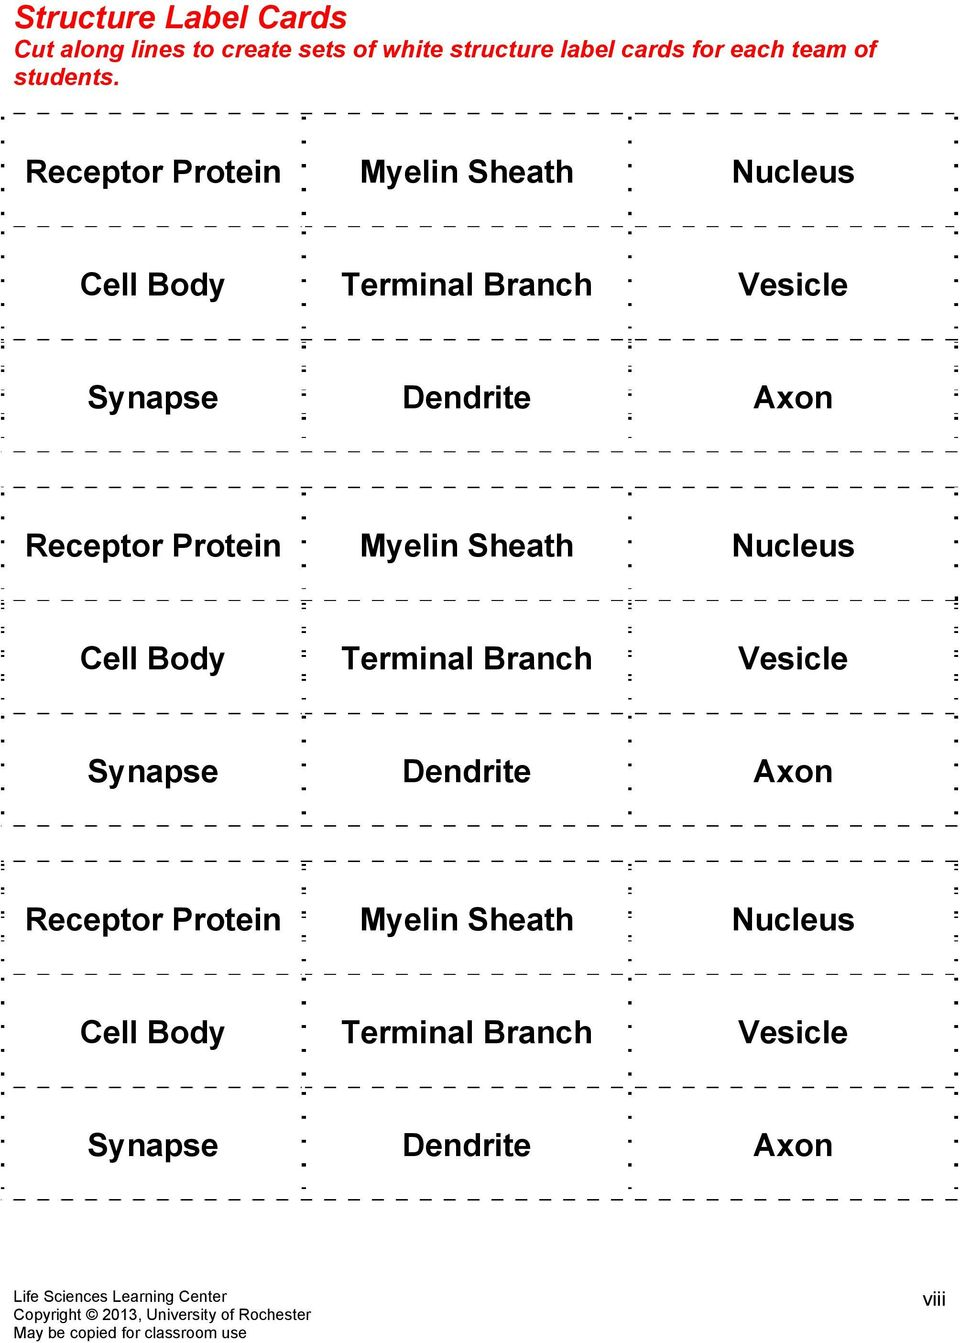 Receptor Protein Myelin Sheath Nucleus Cell Body Terminal Branch Vesicle Synapse Dendrite Axon